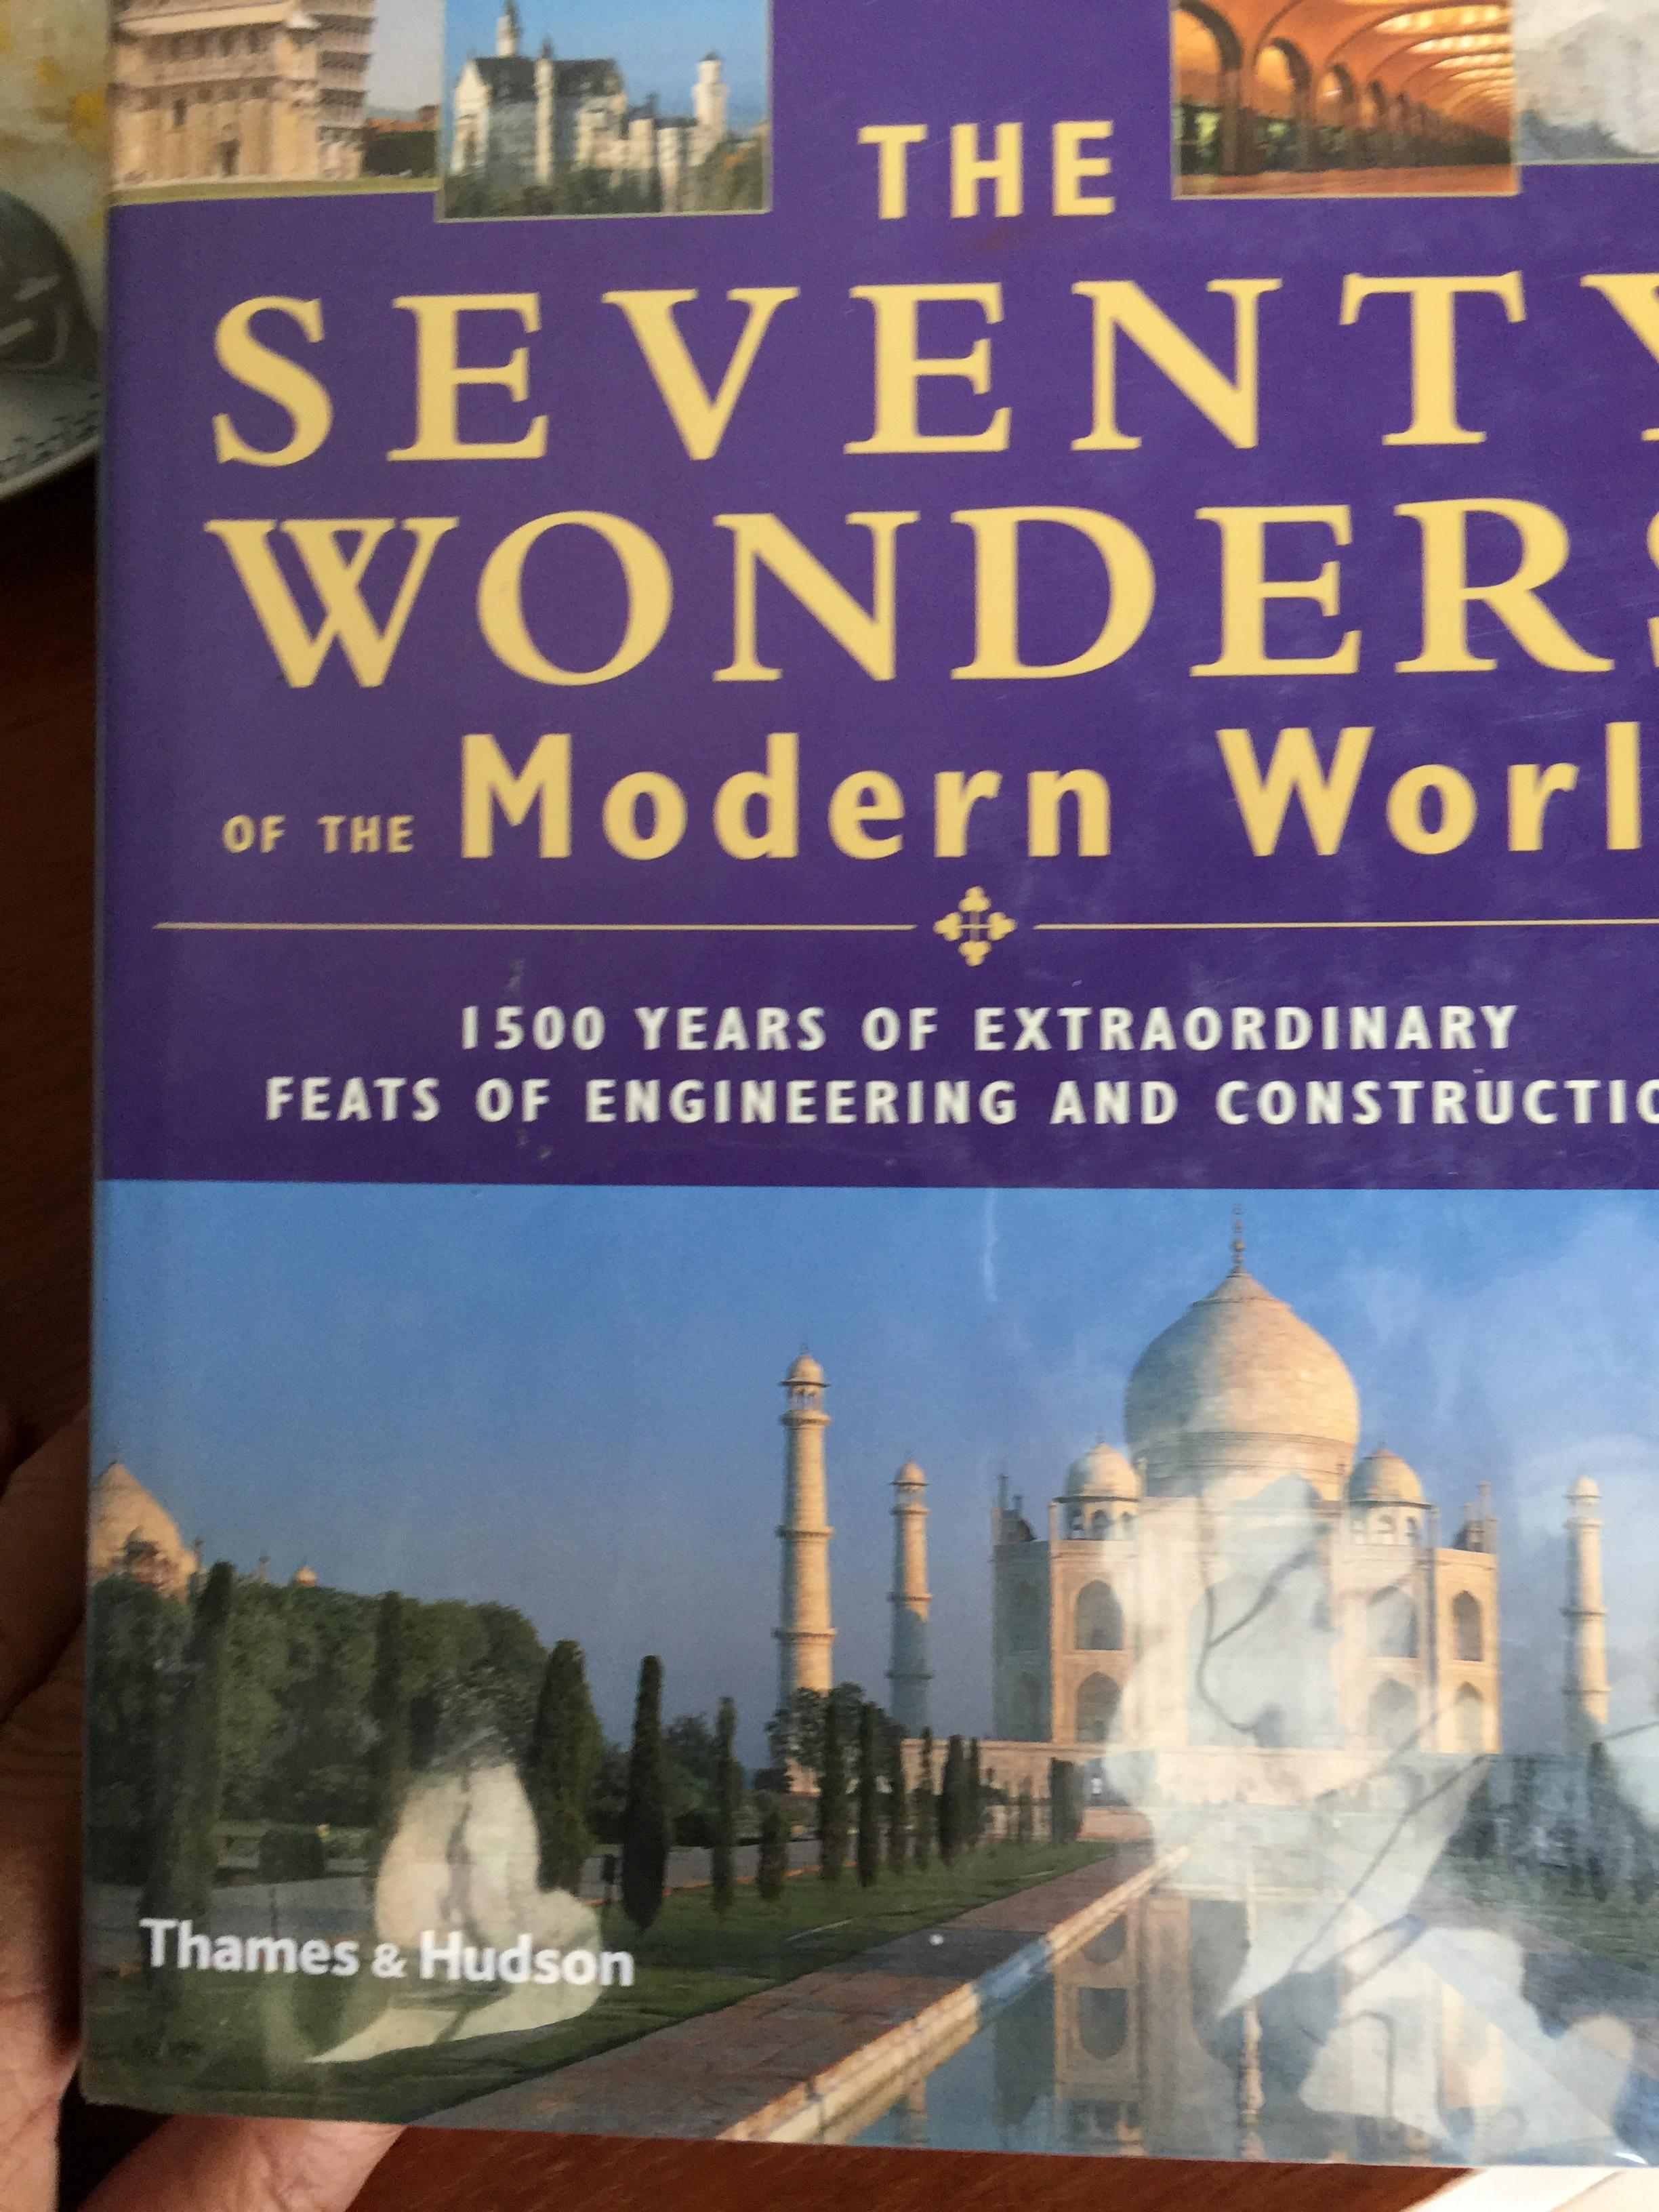 The SEVENTY WONDERFUL of The Modern World.